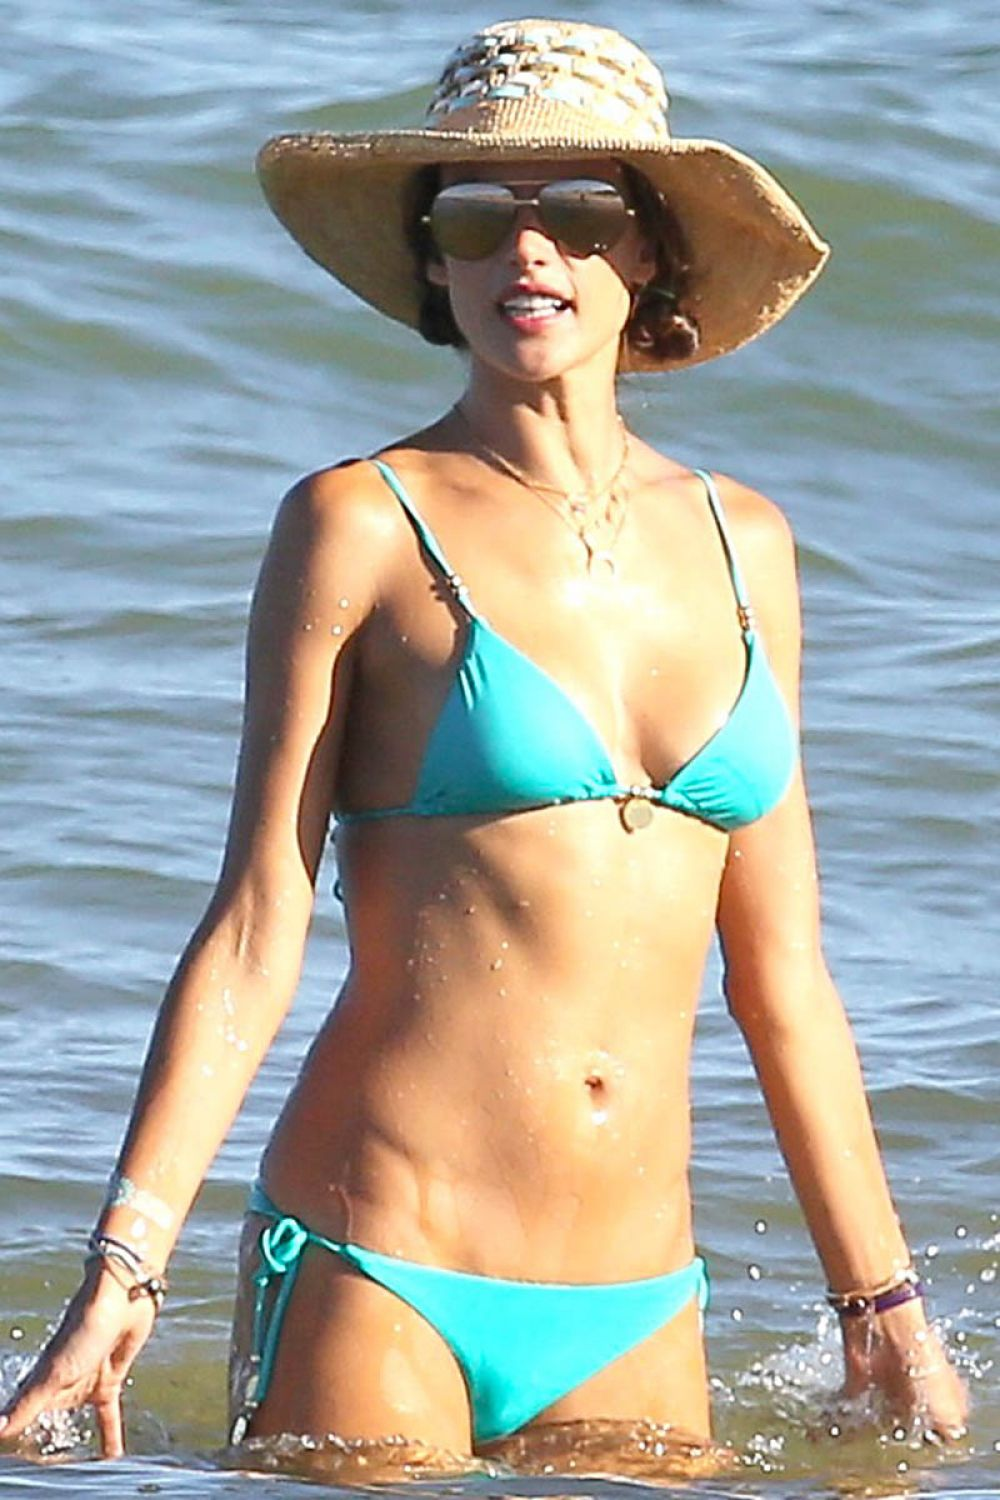 ALESSANDRA AMBROSIO in Bikini at a Beach in Bahia